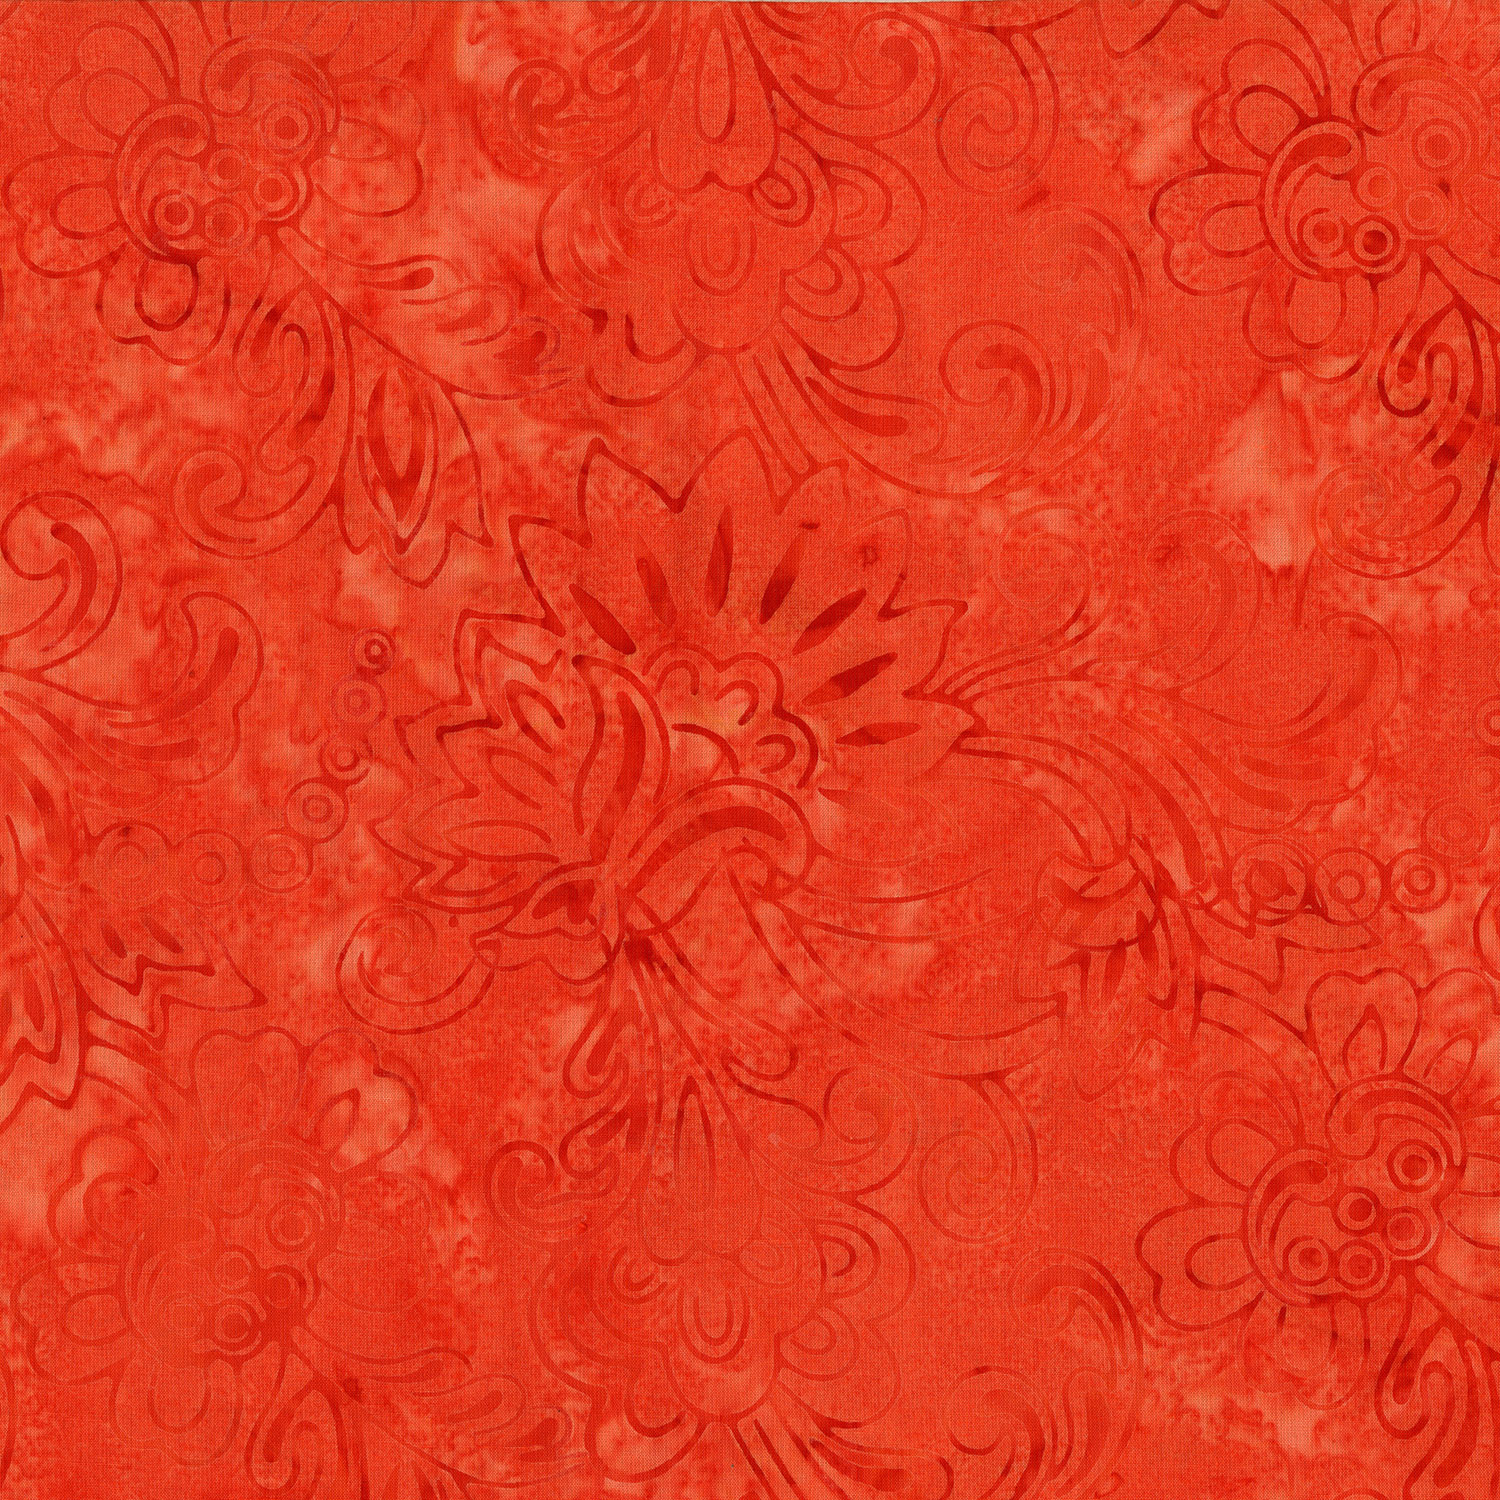 3284-001  JACOBIAN-LIGHT ORANGE